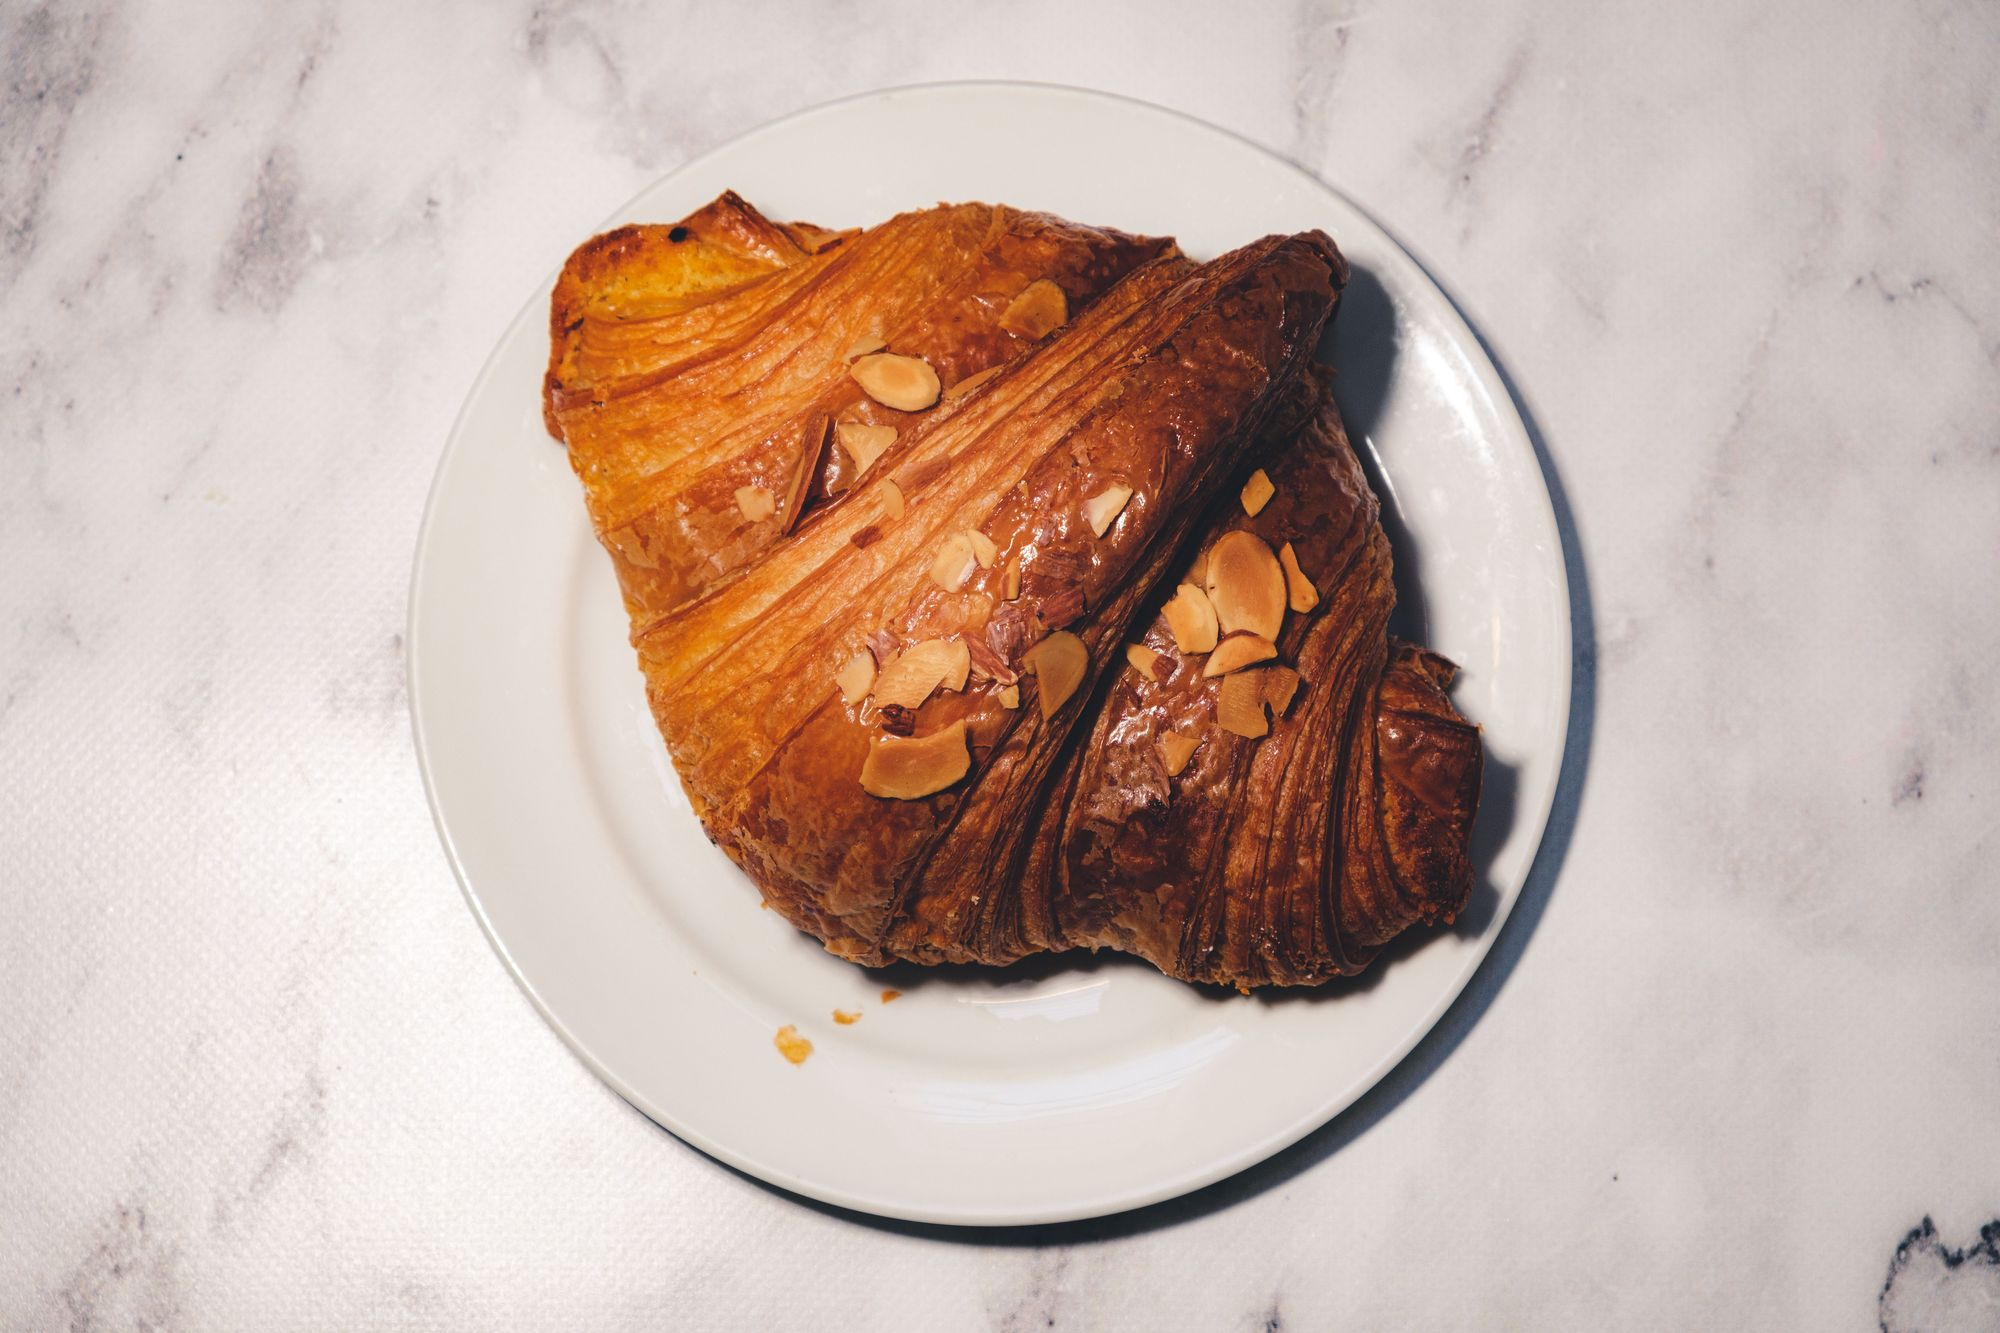 Little Fox Bakehouse Almond Croissant ($3.75) - Overhead